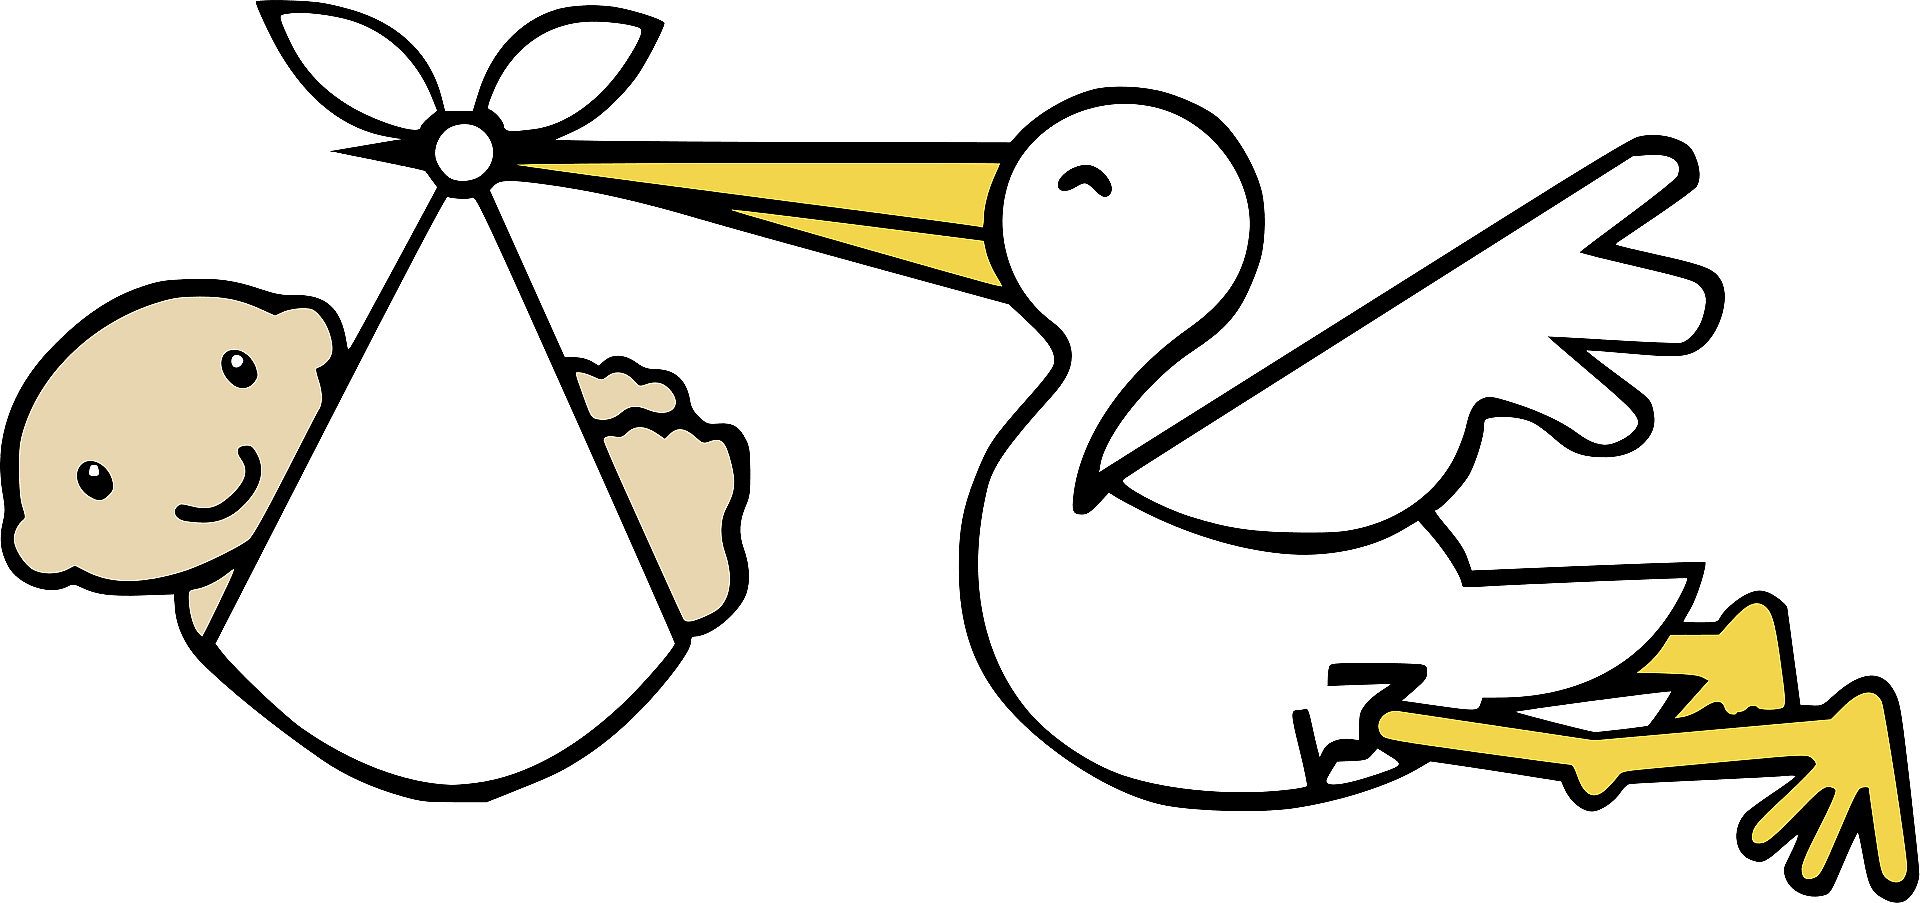 Stork Carrying Baby Clipart Free Download Transparent Png Creazilla